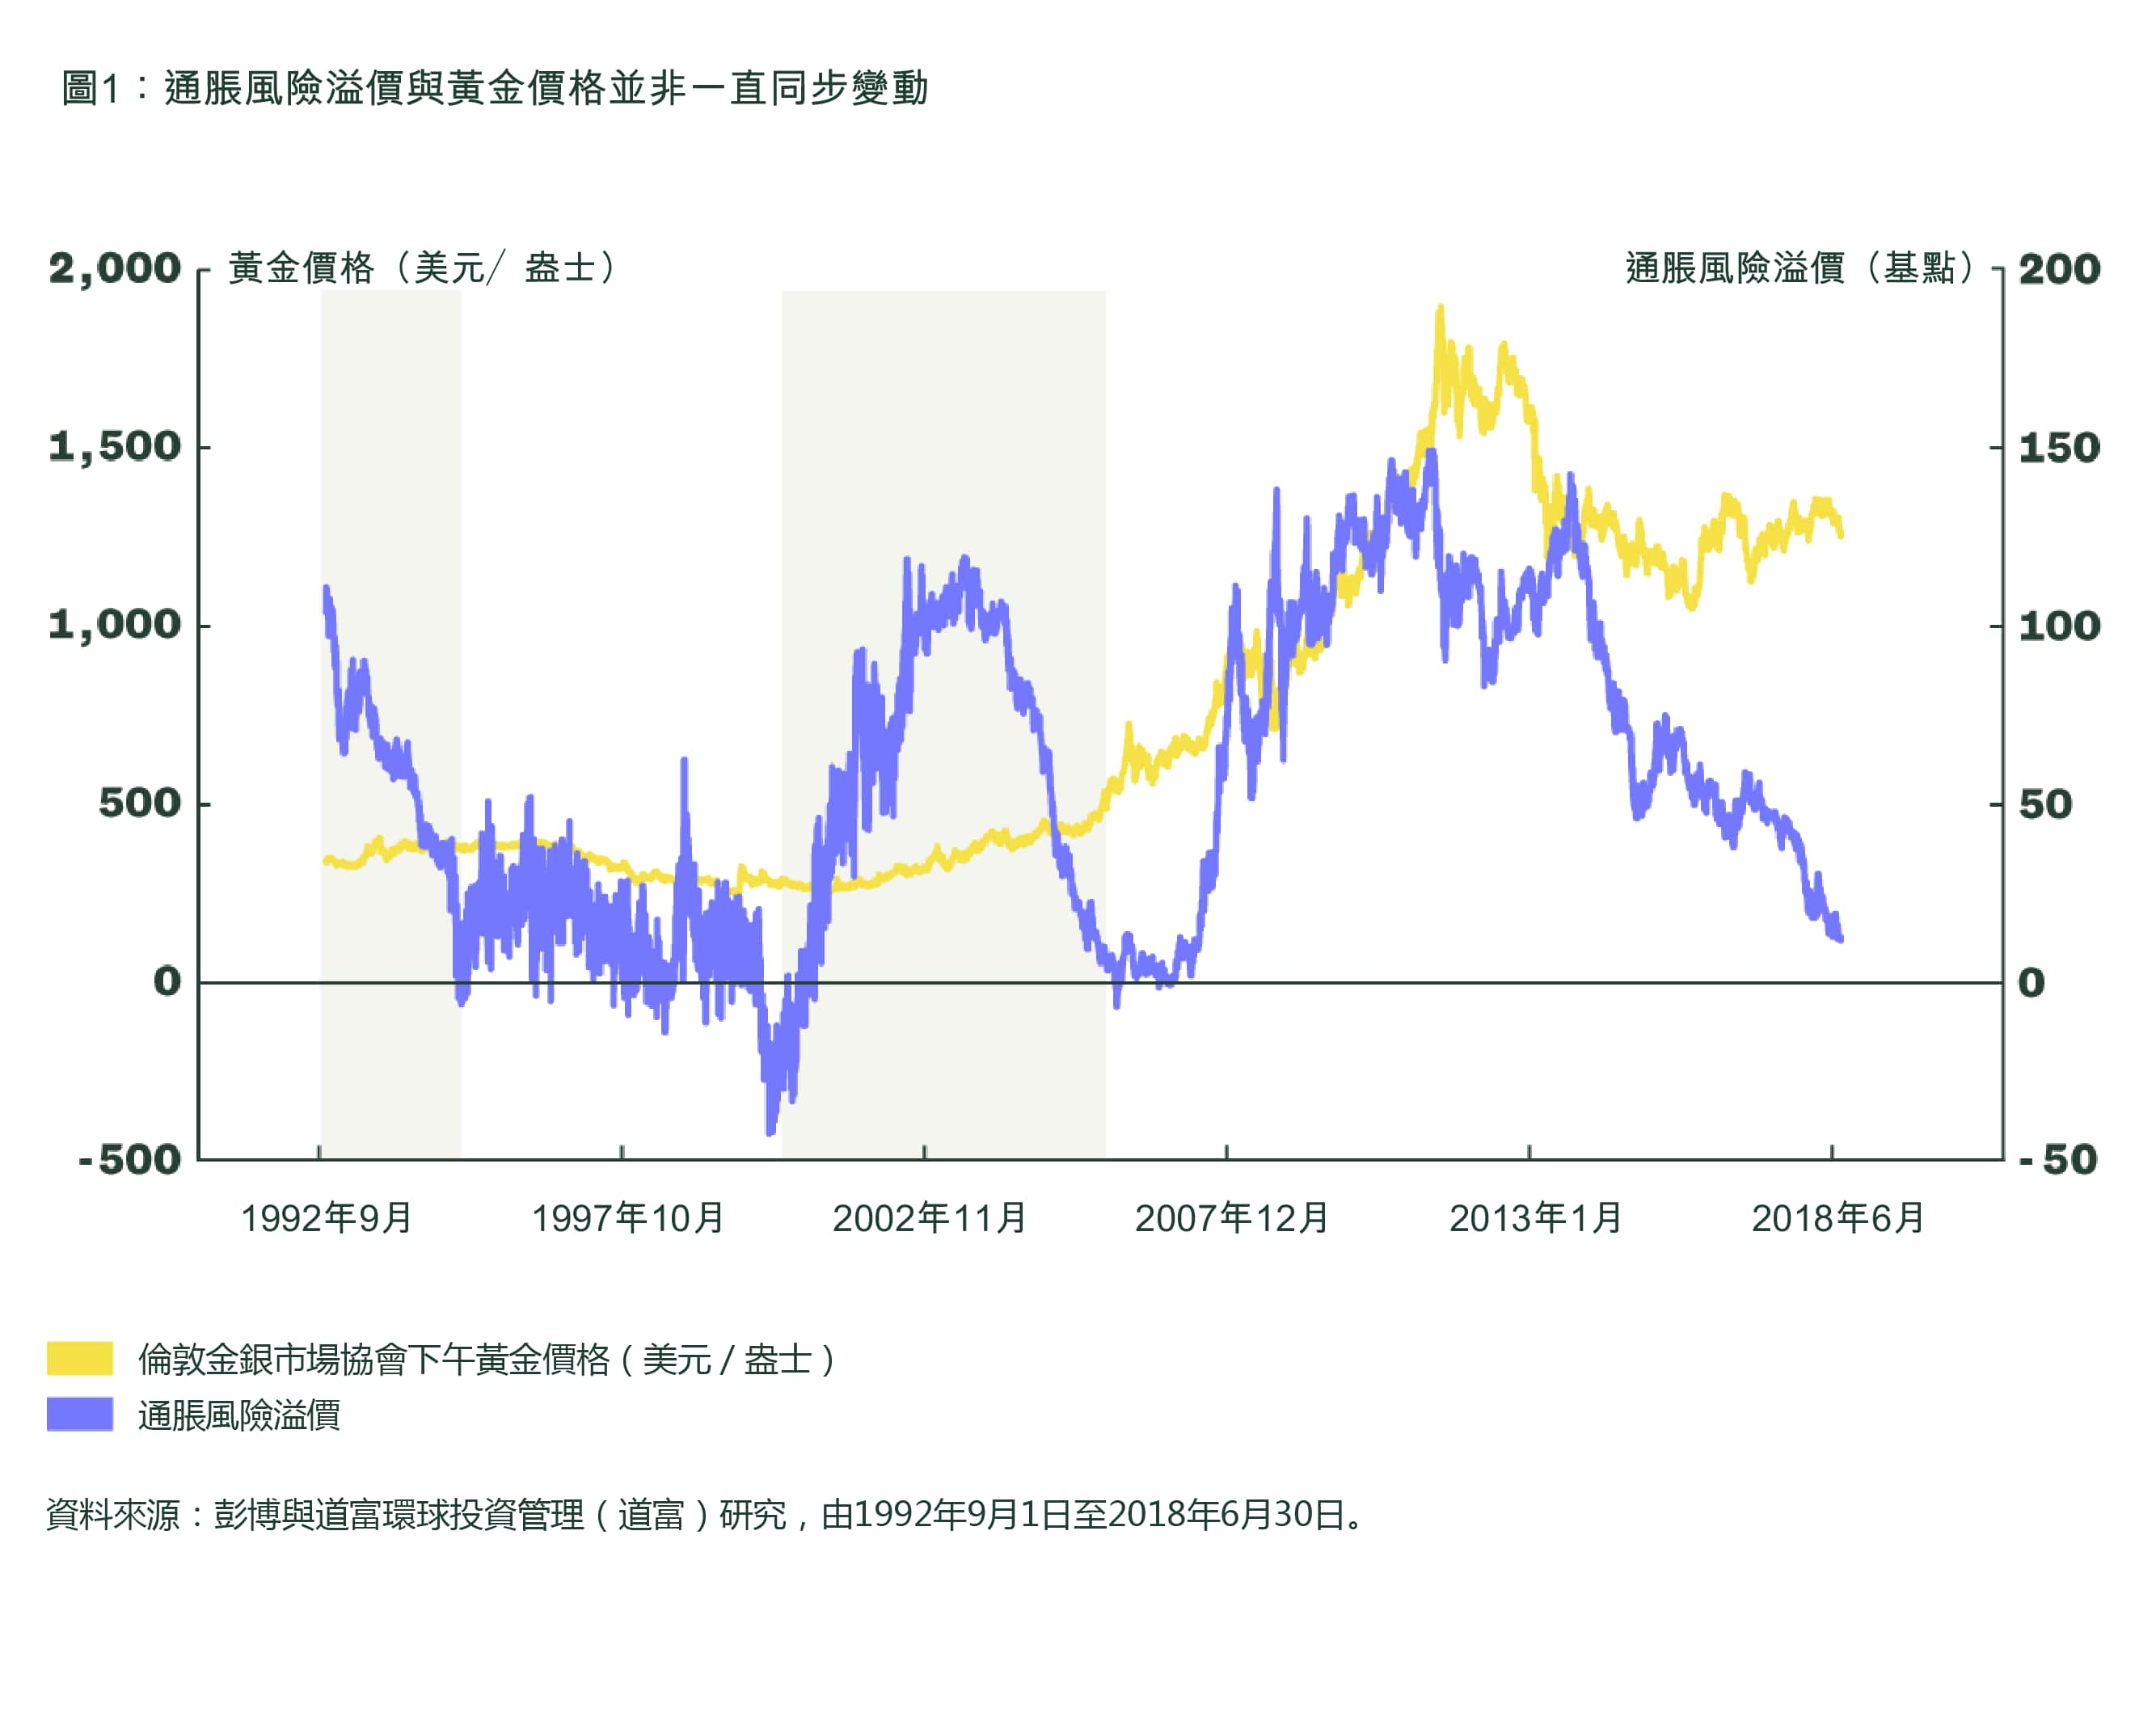 Inflation Risk Premium & Price of Gold